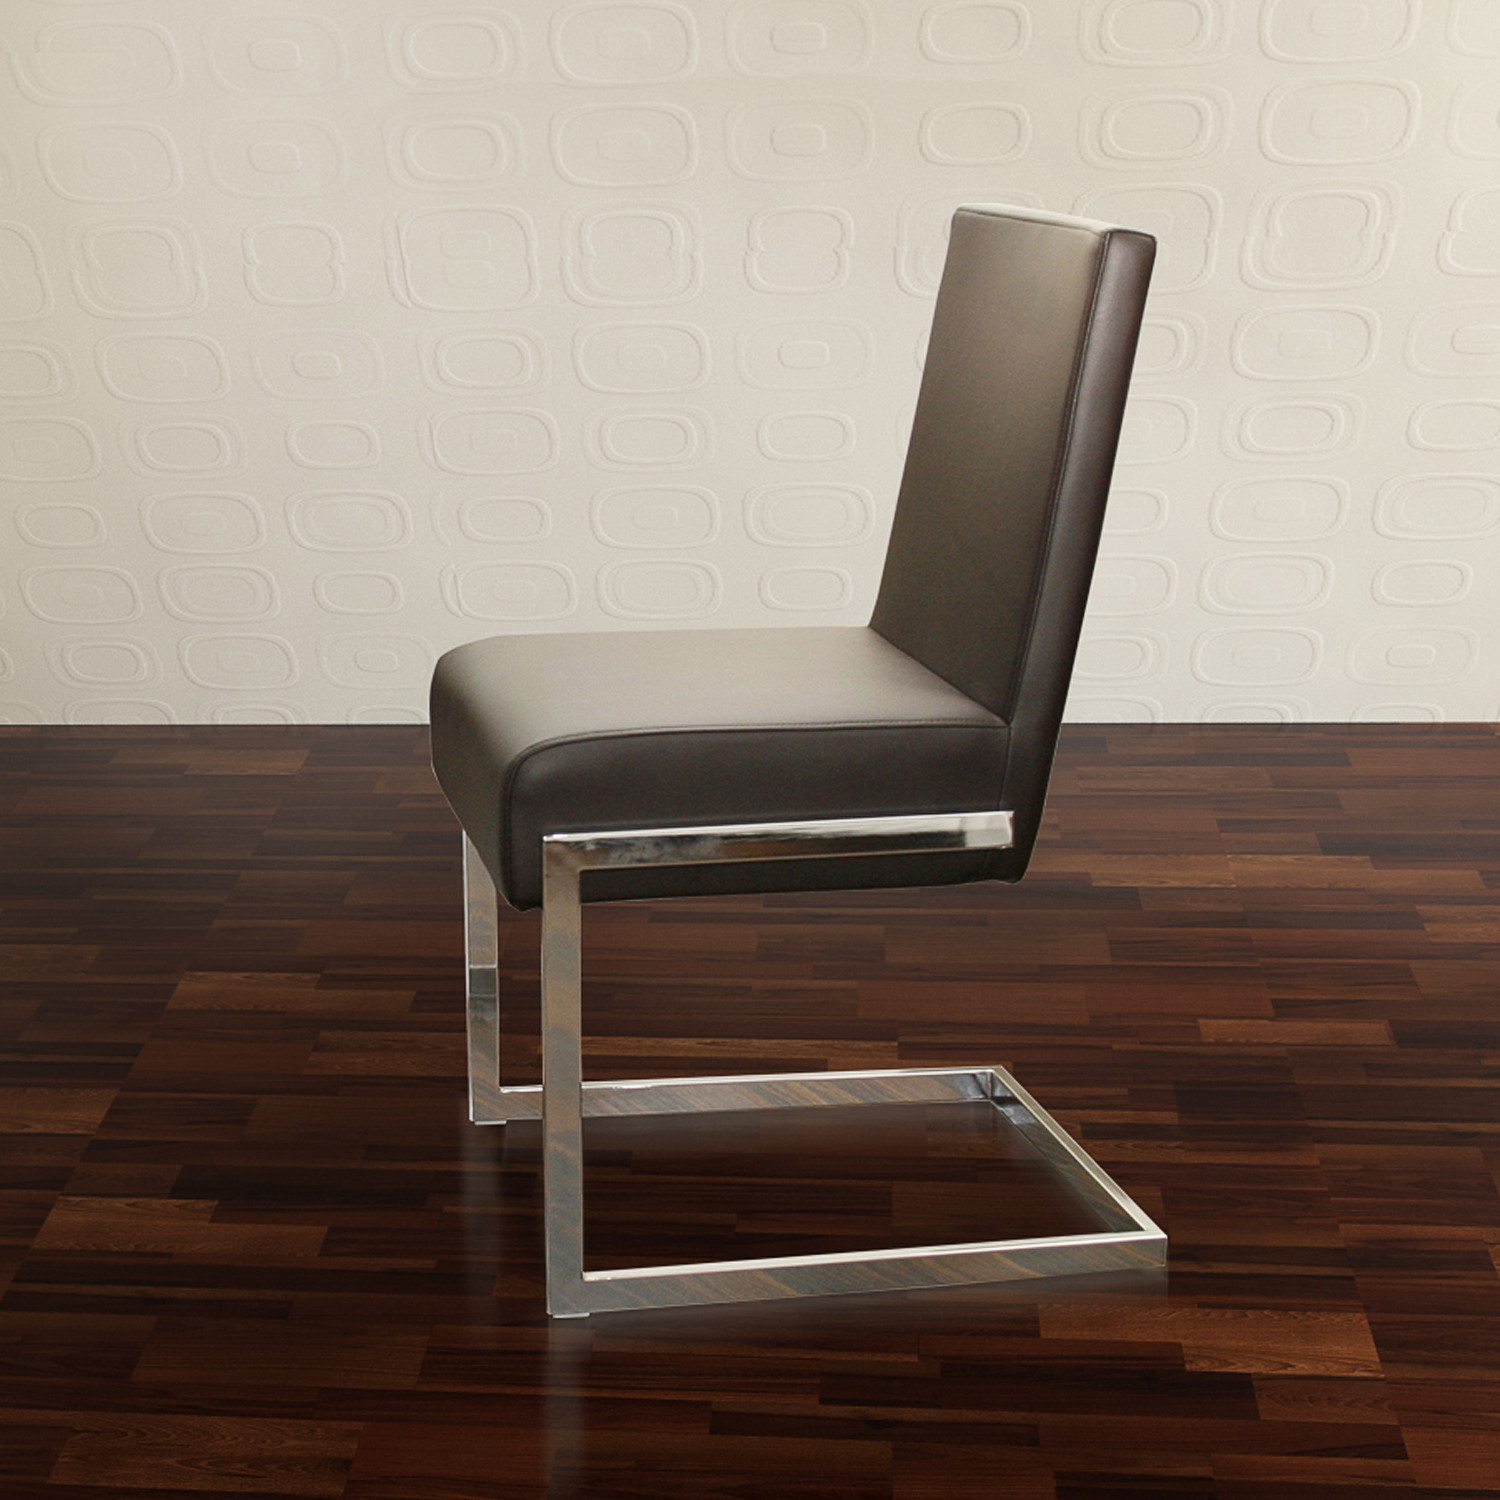 Mid century modern furniture vancouver design by duophonix home building furniture and interior - Vancouver mid century modern furniture ...